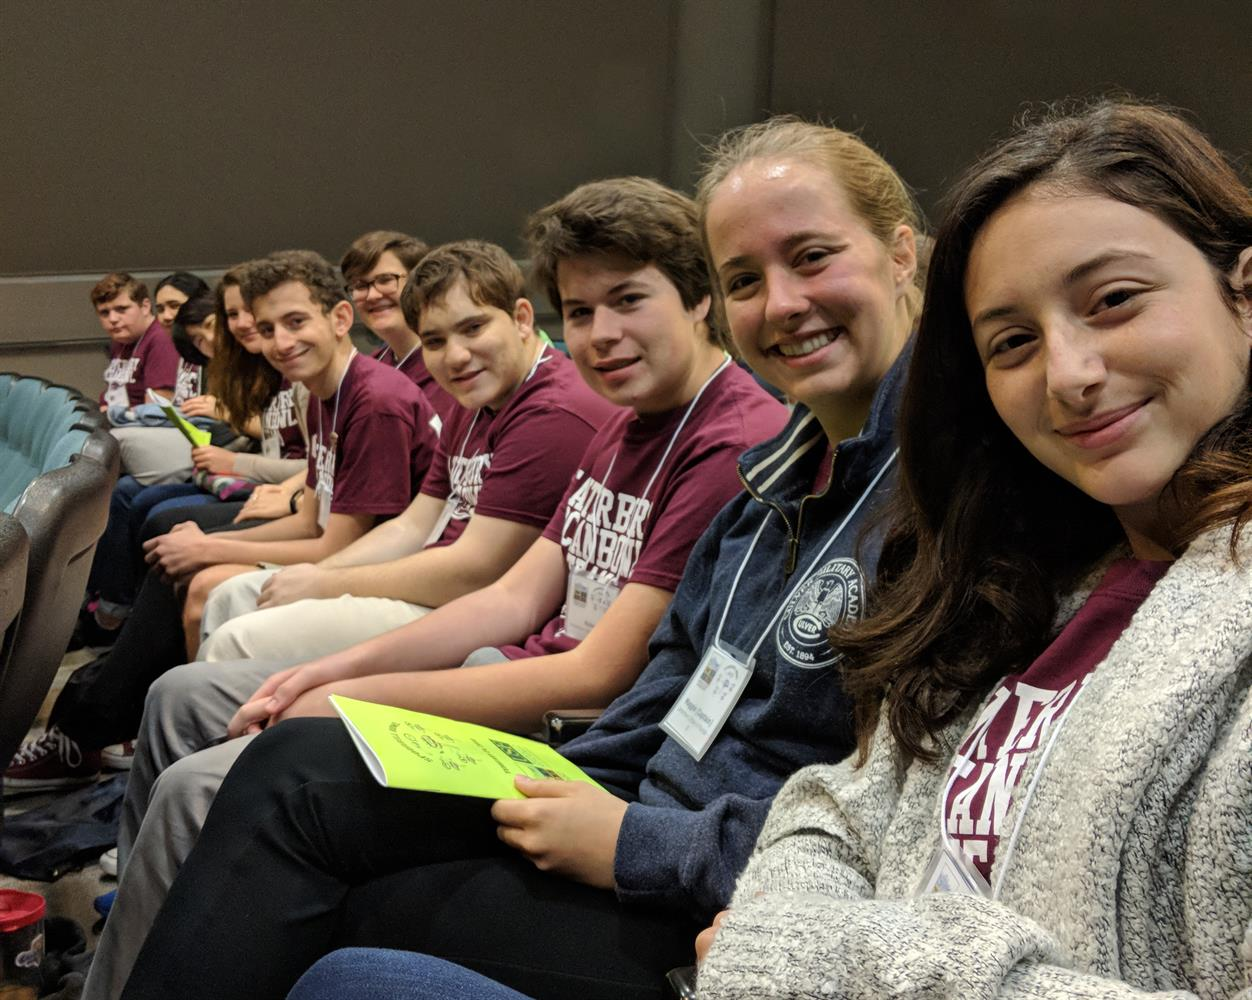 Canterbury Teams Earn 3rd in Their Division at Ocean Bowl